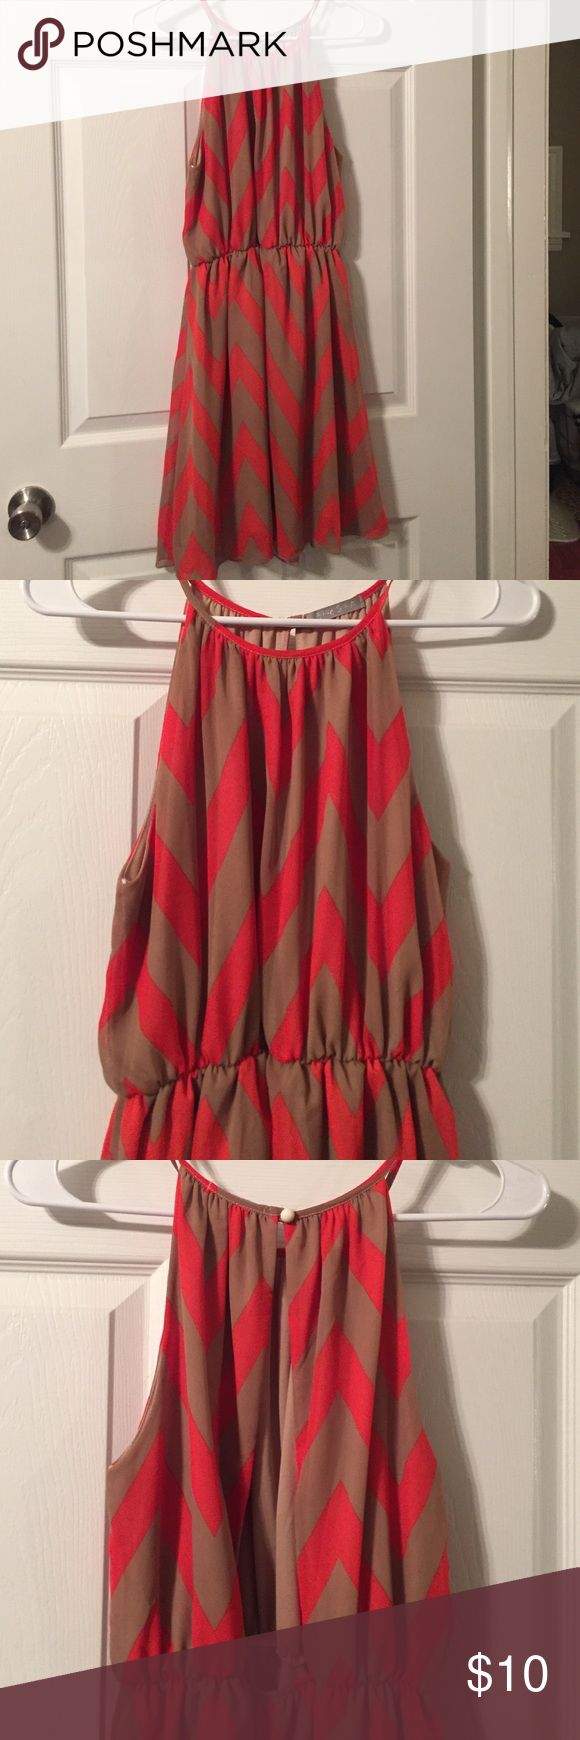 Tan and orange chevron dress Tan and orange chevron dress. Size small. Elastic at waist and has open back with white button. From Charlotte Russe. Blue S LA Dresses Mini